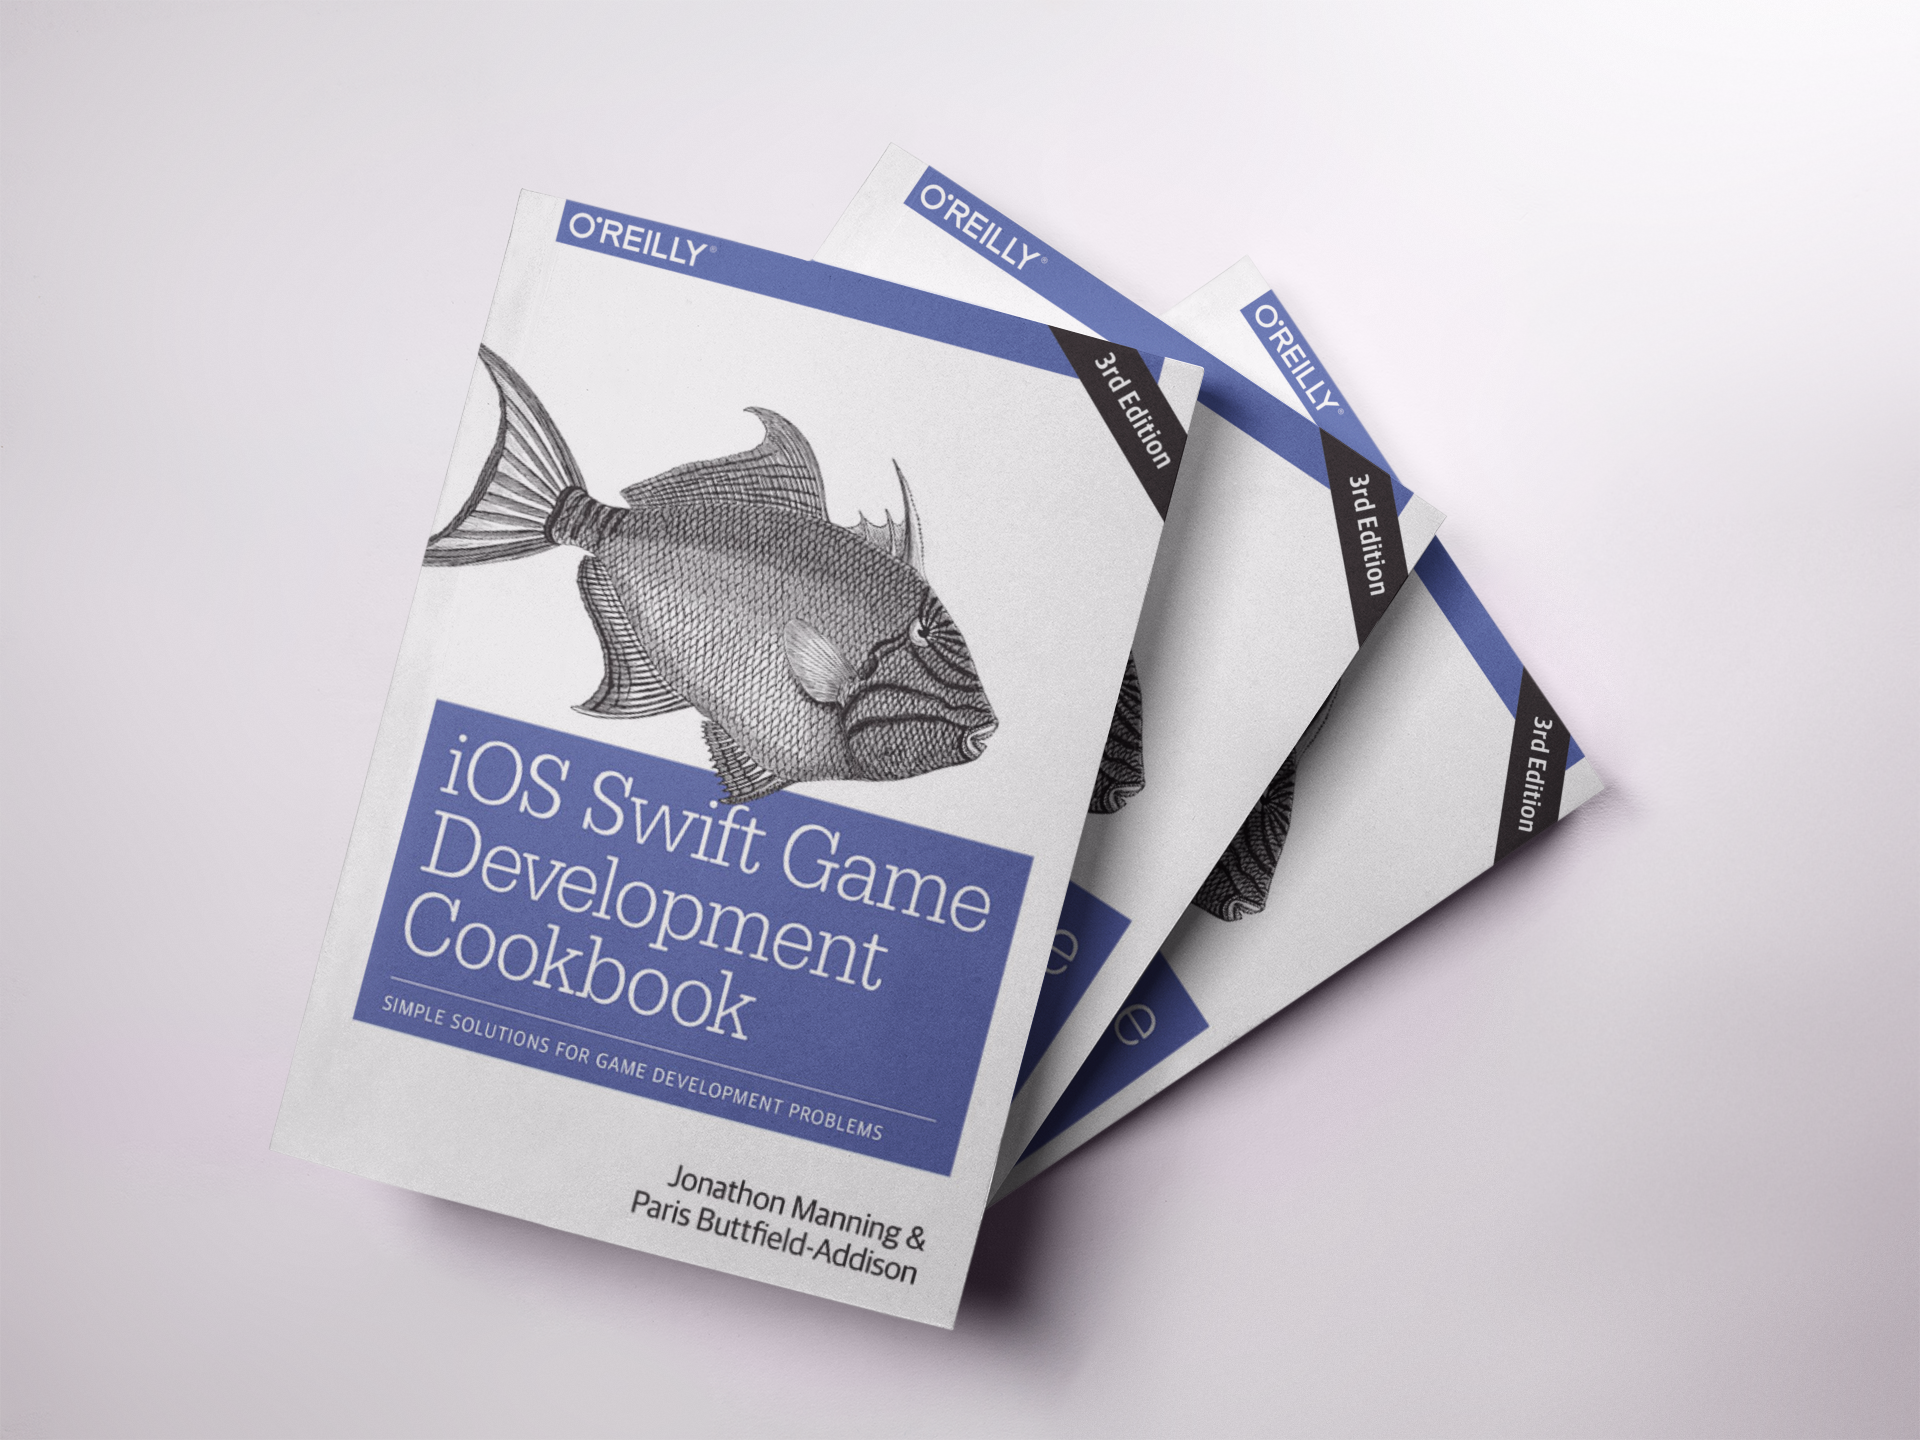 Our latest book is the iOS Swift Game Development Cookbook